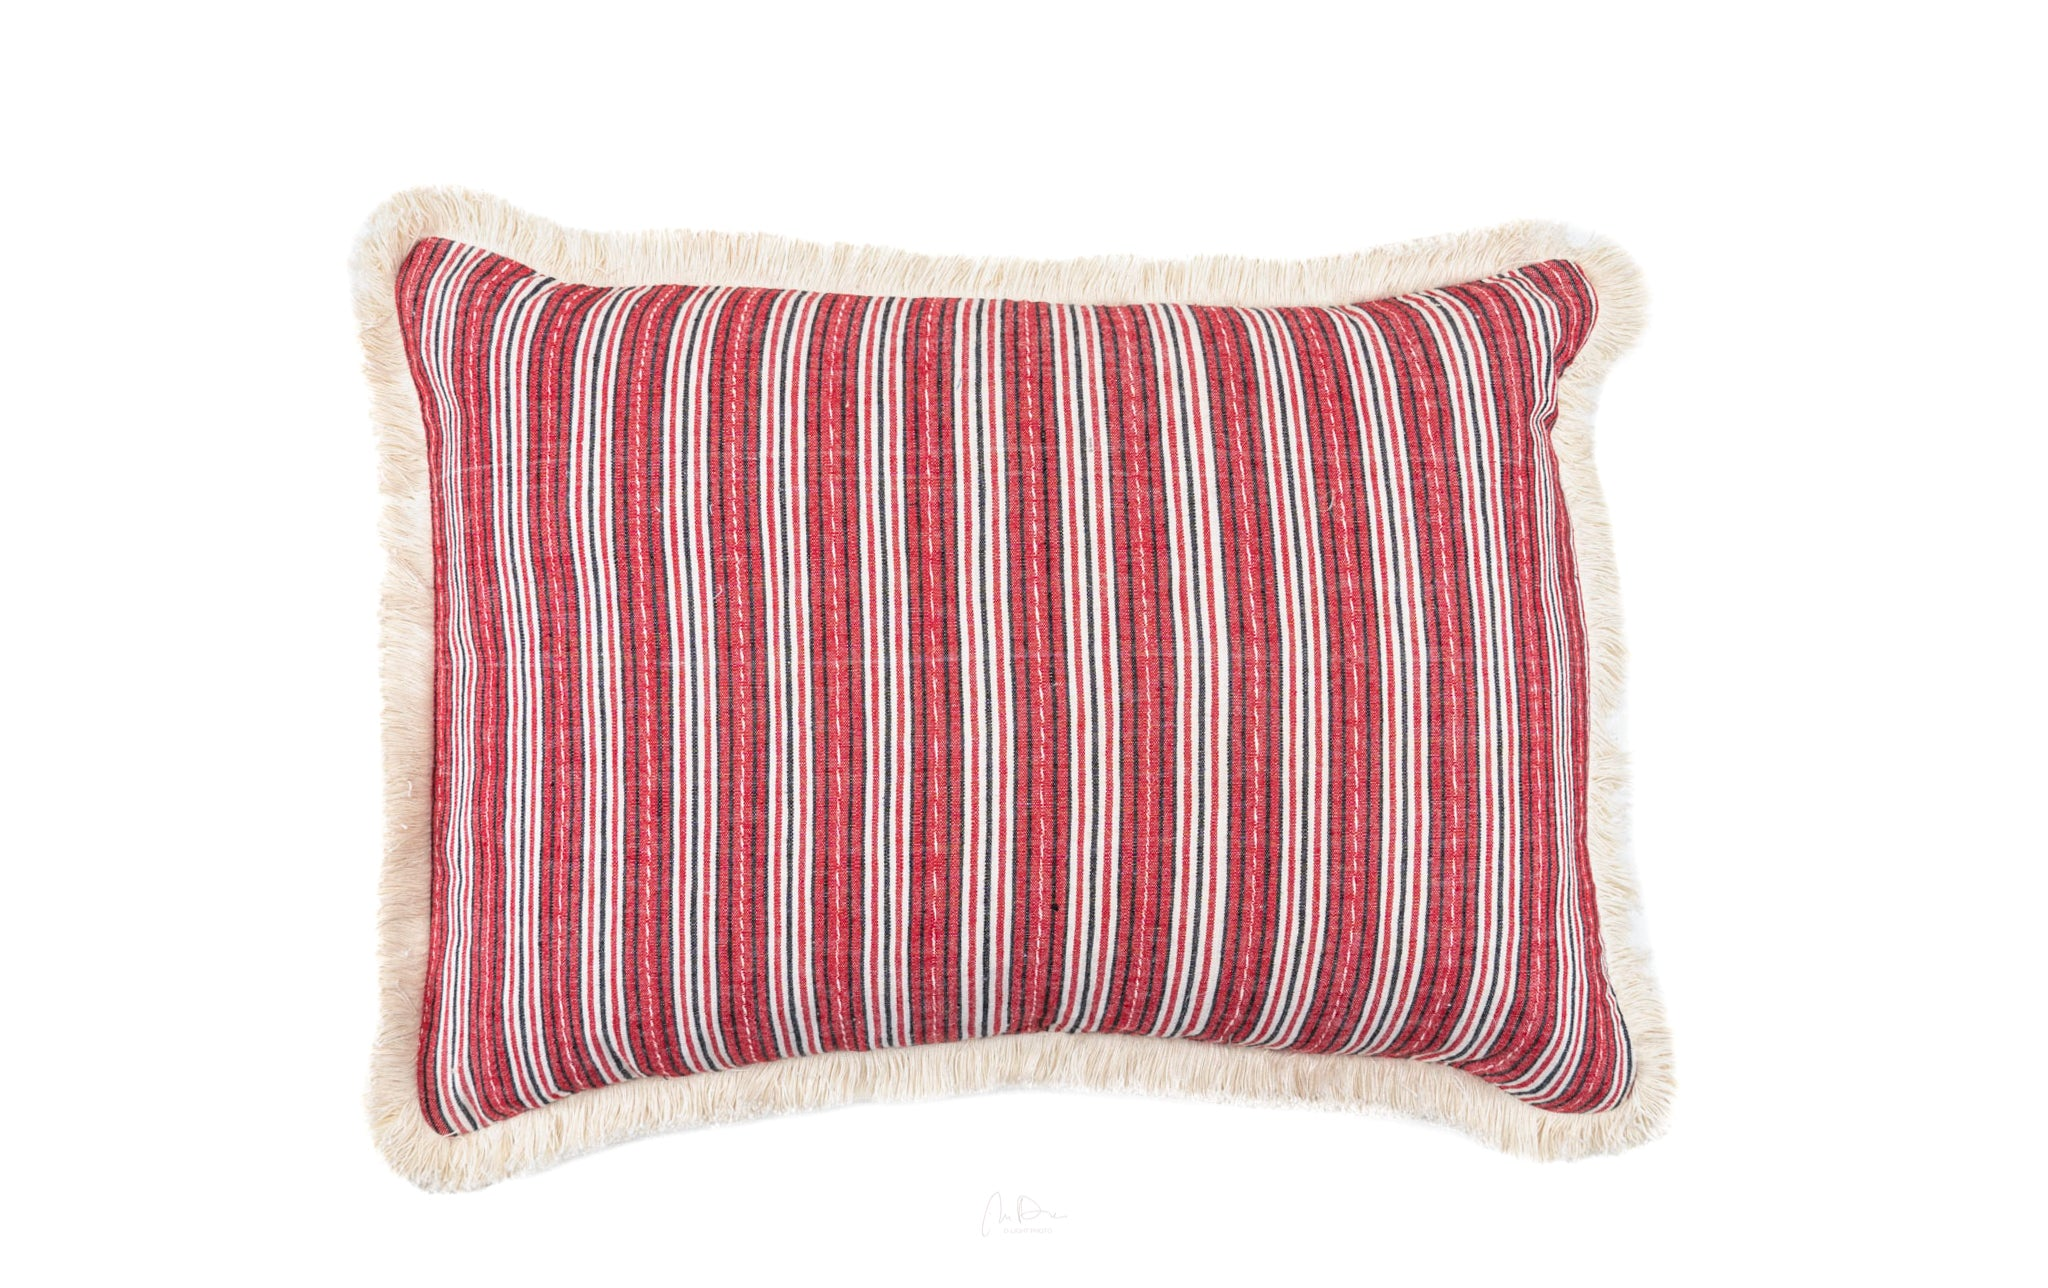 Pillow: Handwoven antique Hungarian hemp - P190